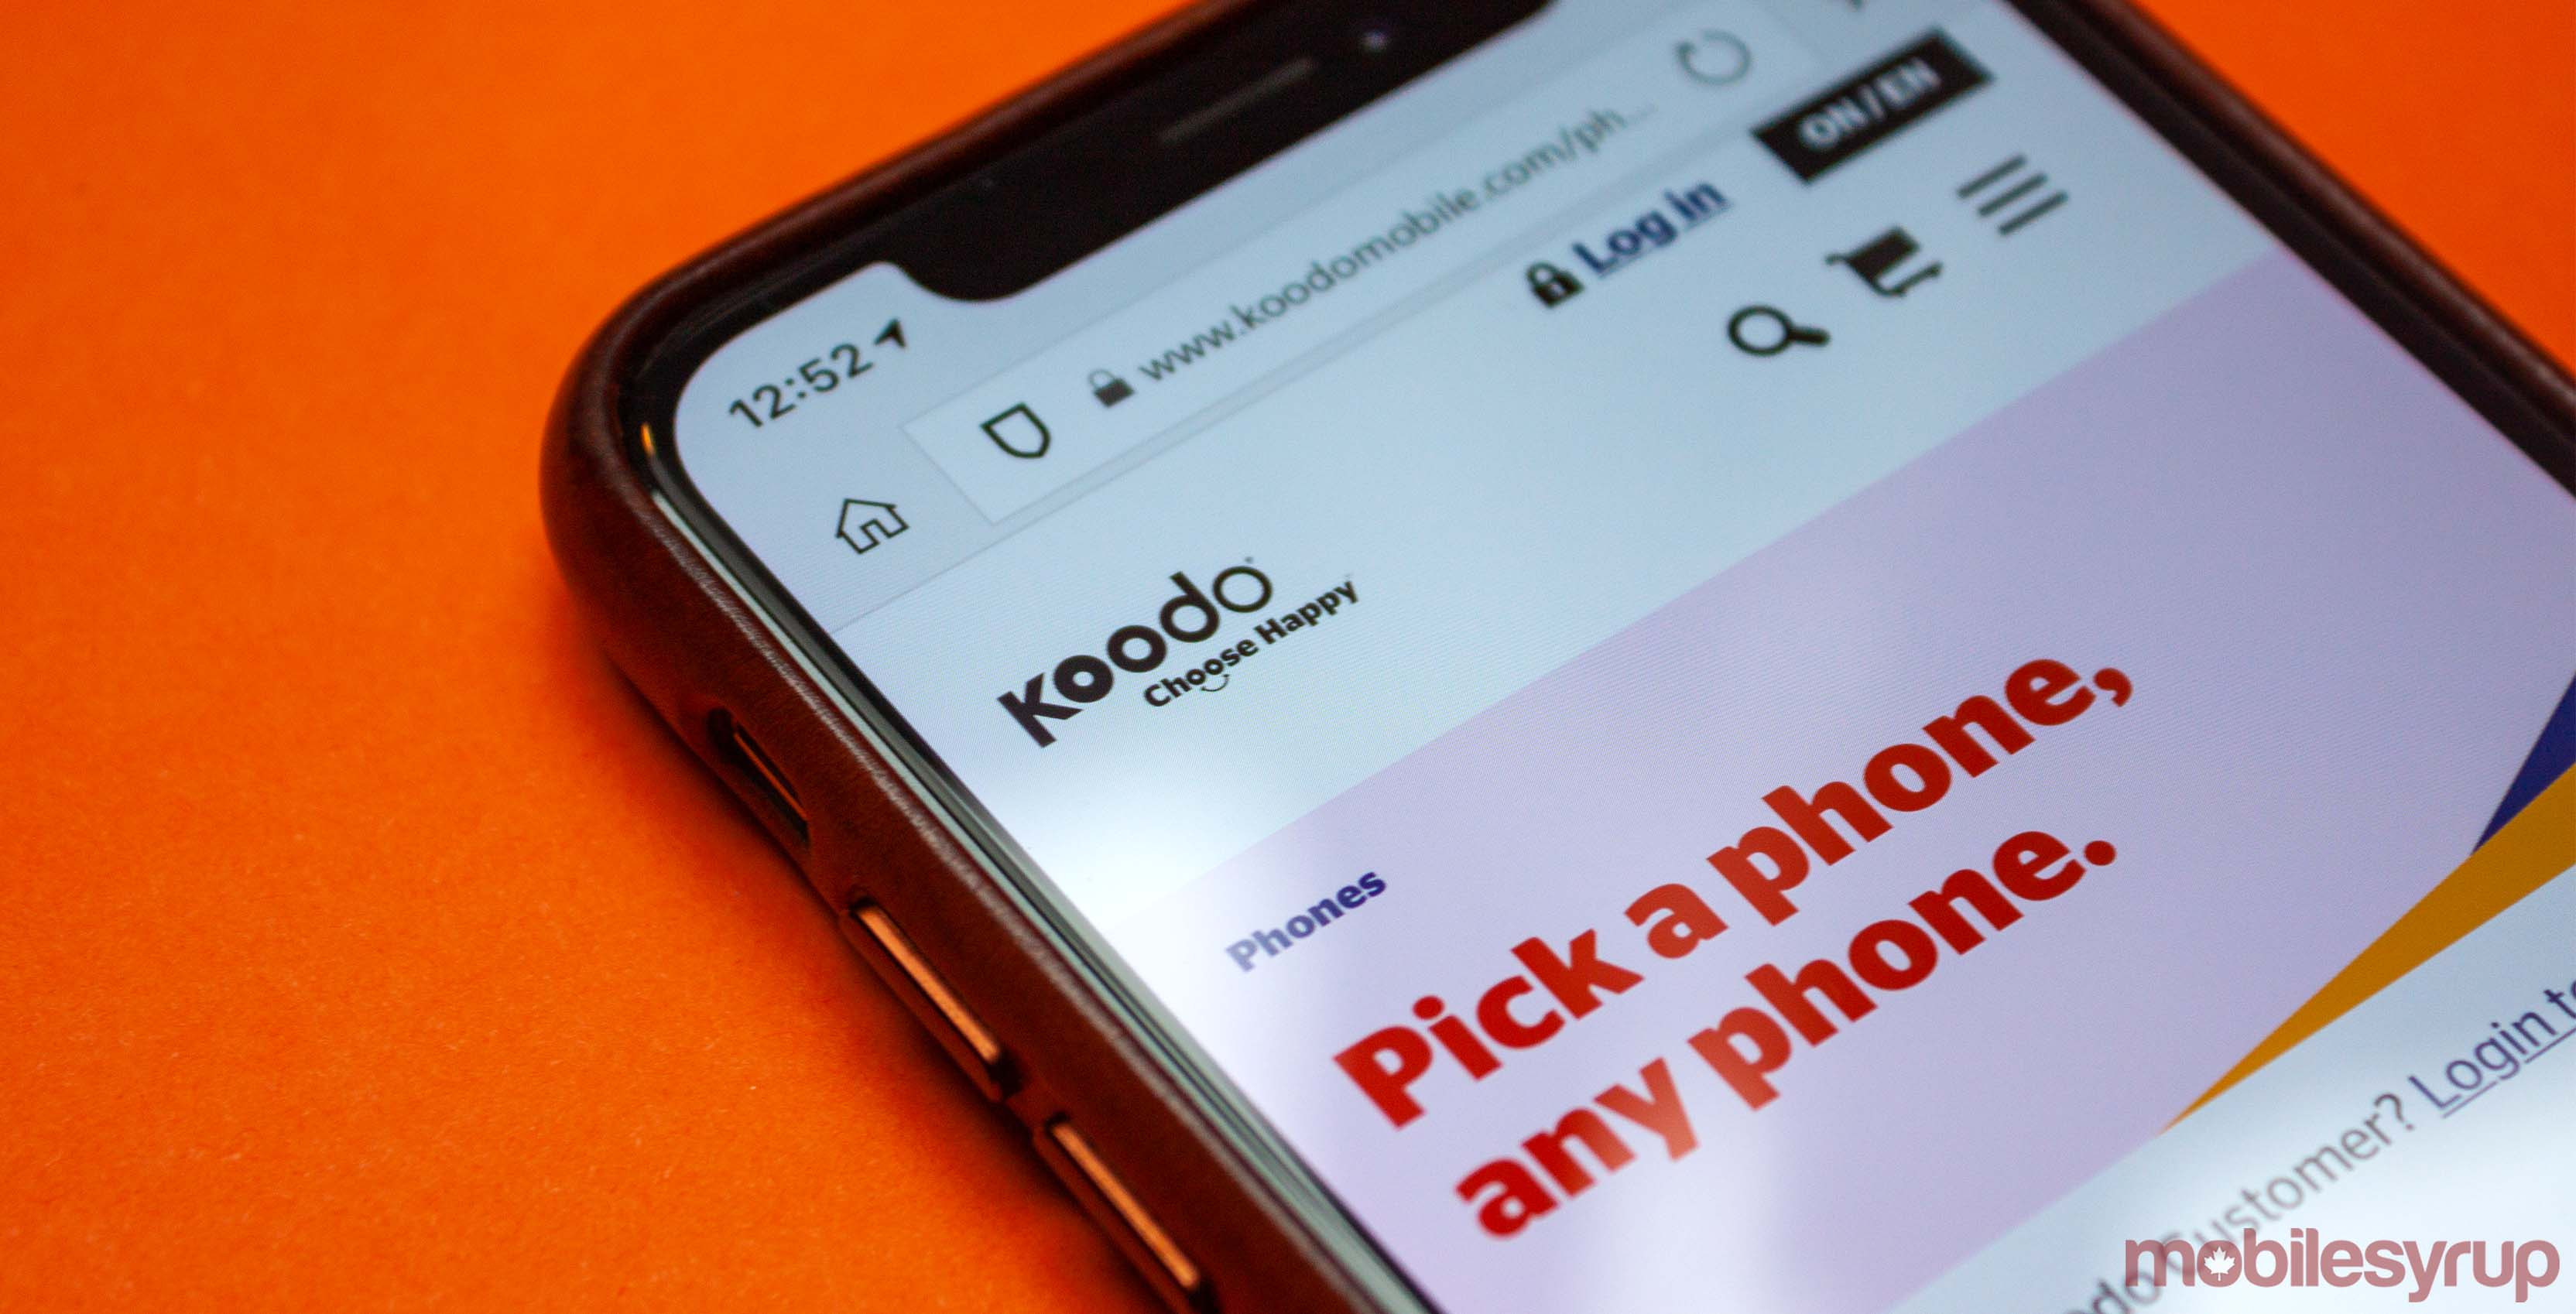 Koodo website on iPhone